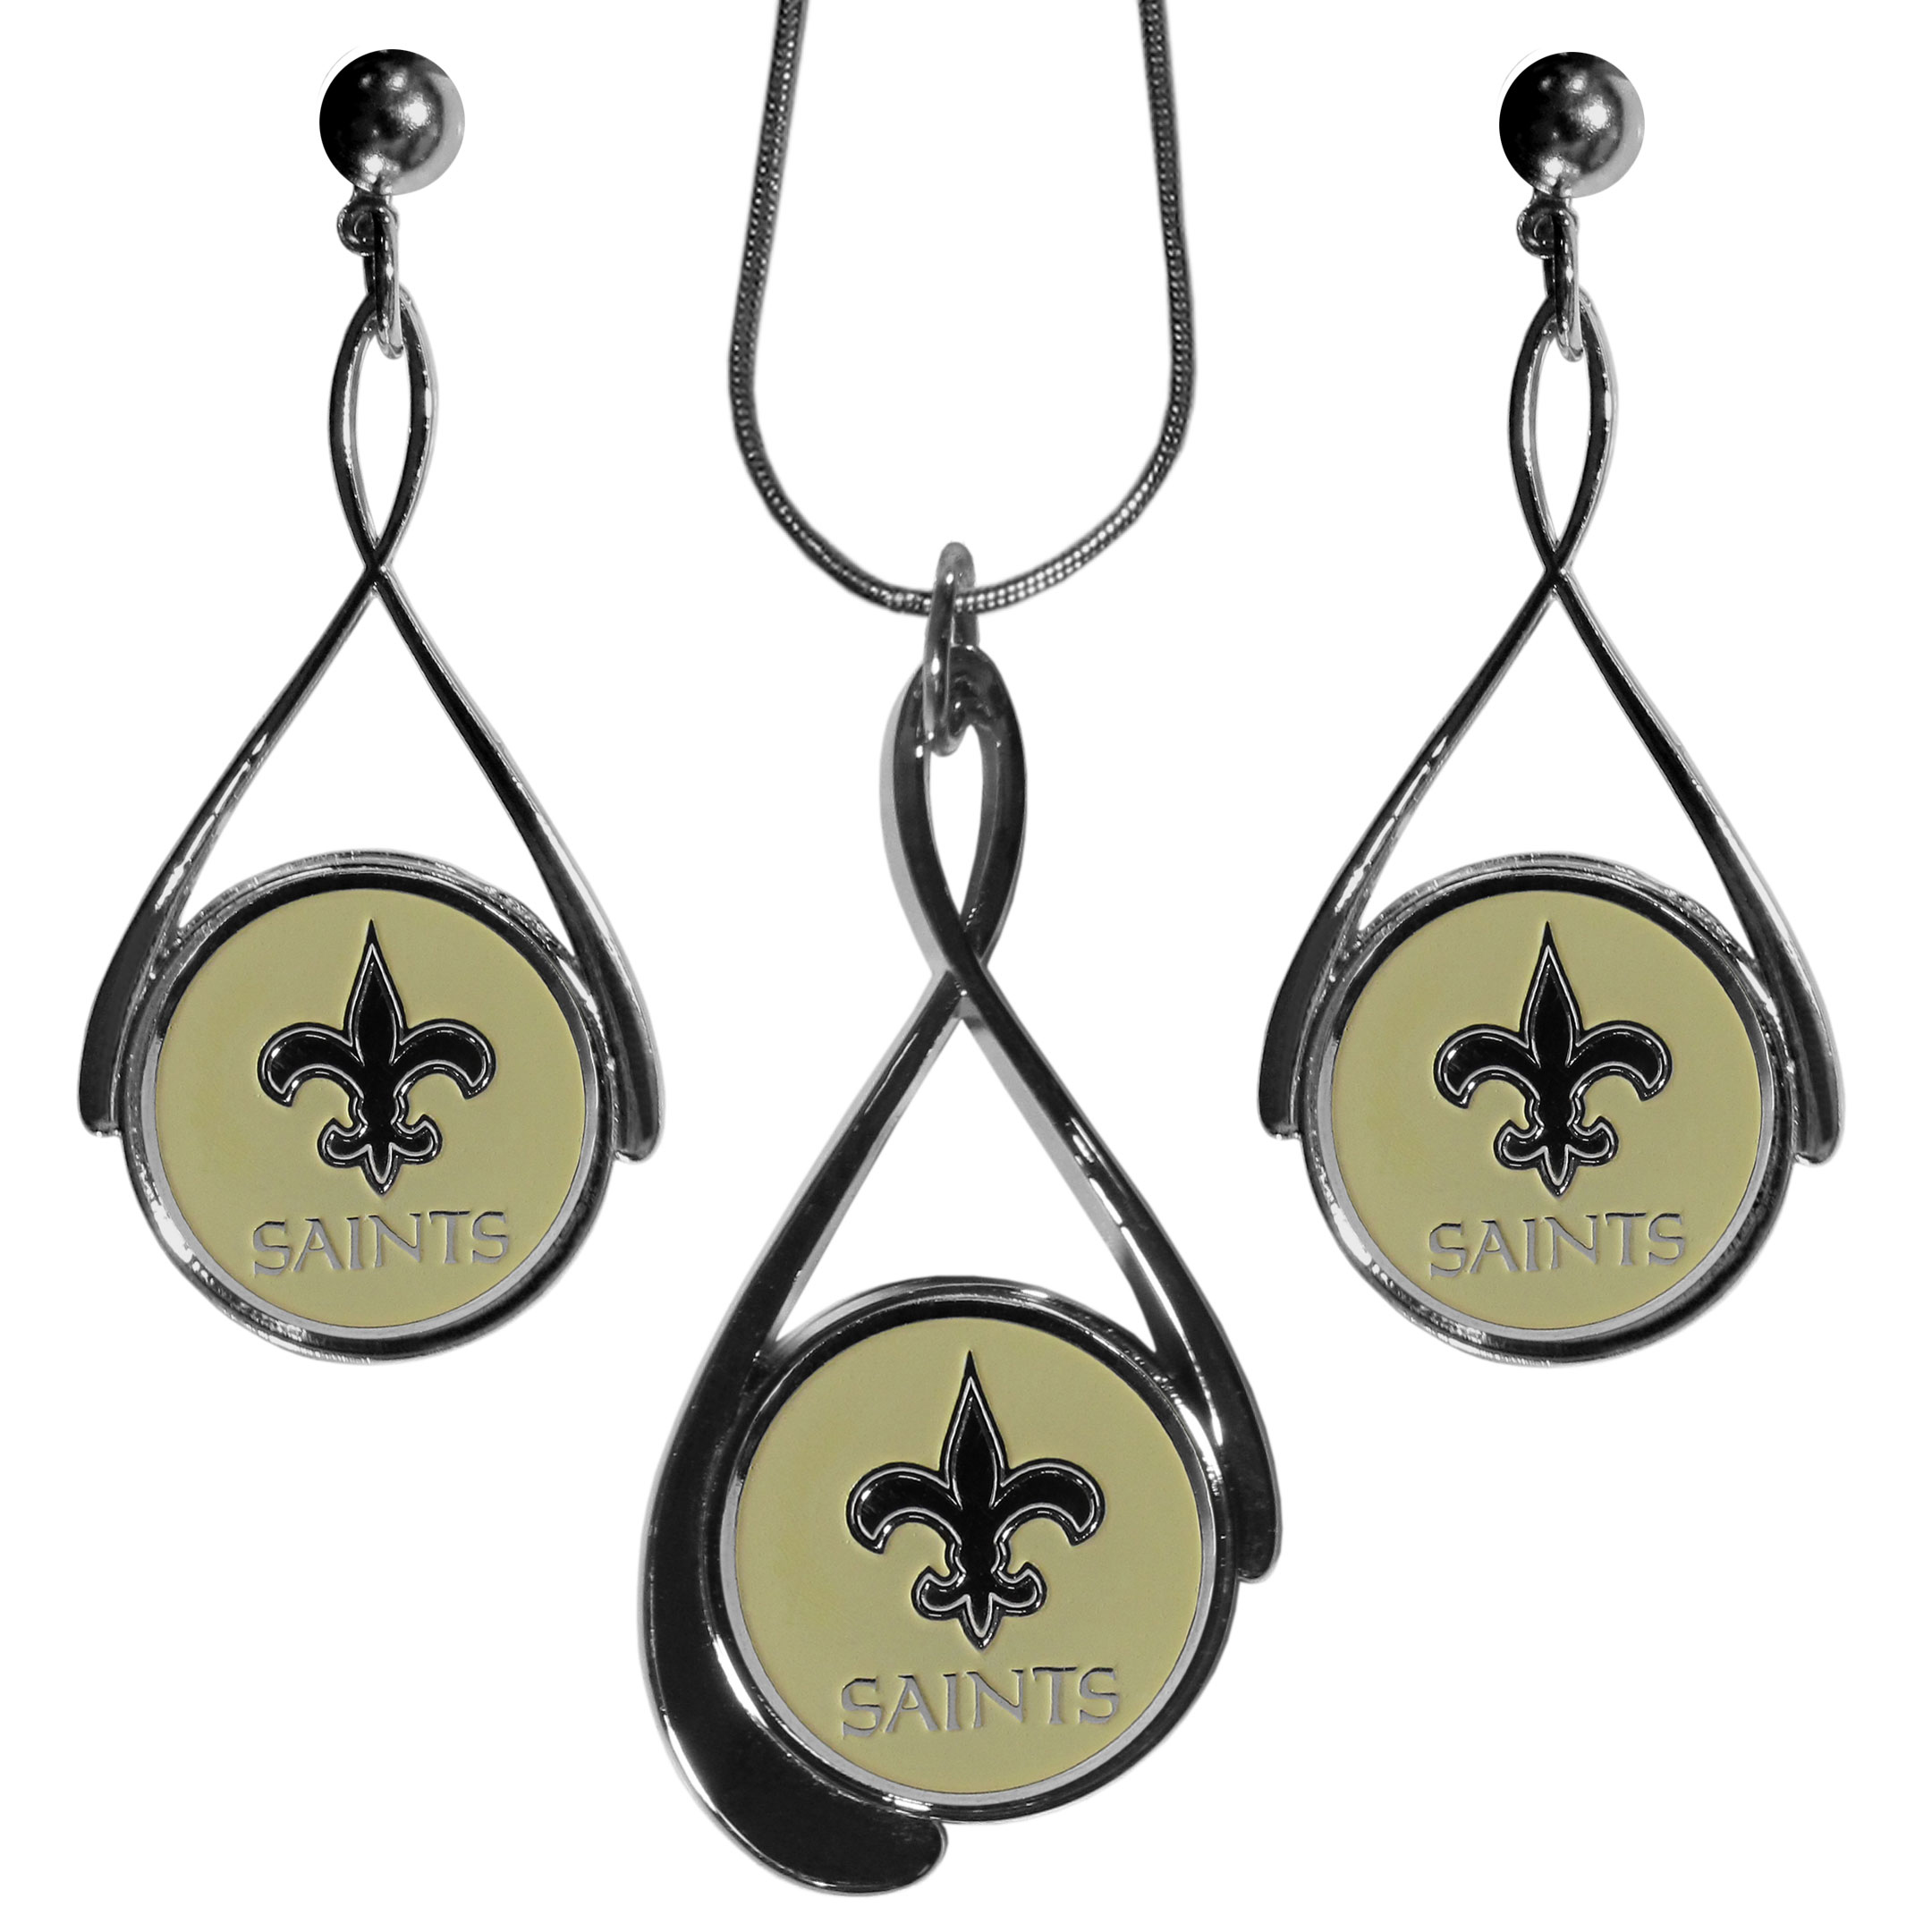 New Orleans Saints Tear Drop Jewelry Set - Our New Orleans Saints tear drop earrings and necklace set is a sporty twist on the classic tear drop style. The high polish dangle earrings feature the team logo in raised metal against the primary team color inset into the 2 inch tear drop setting paired with a beautiful matching necklace with a 18 inch snake chain with 2 inch extendor. The earrings have hypoallergenic stud posts.